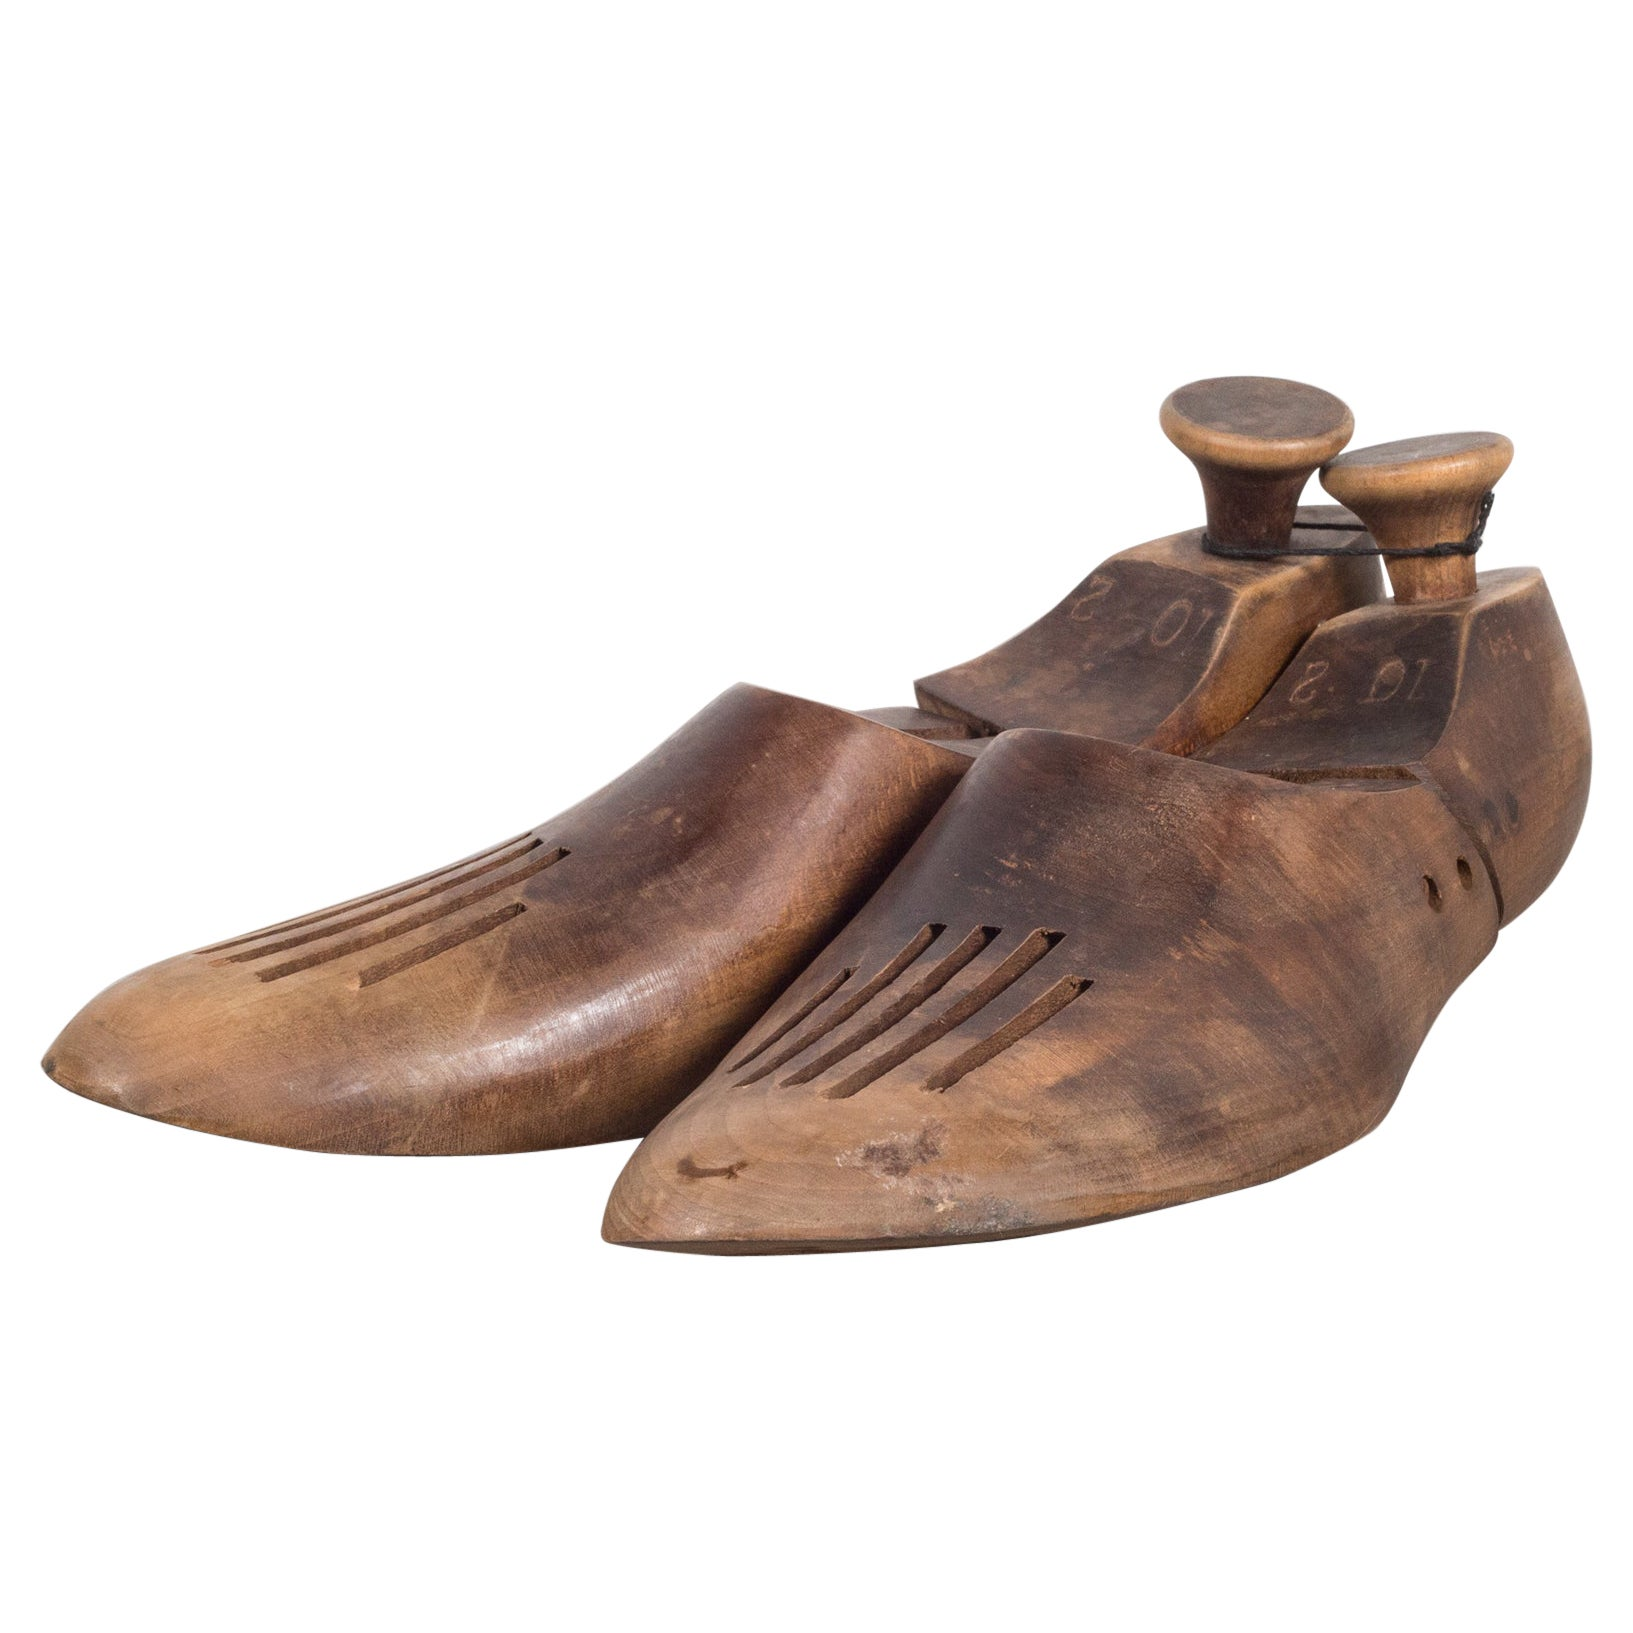 Antique Wooden Shoe Forms with Handles, c.1920